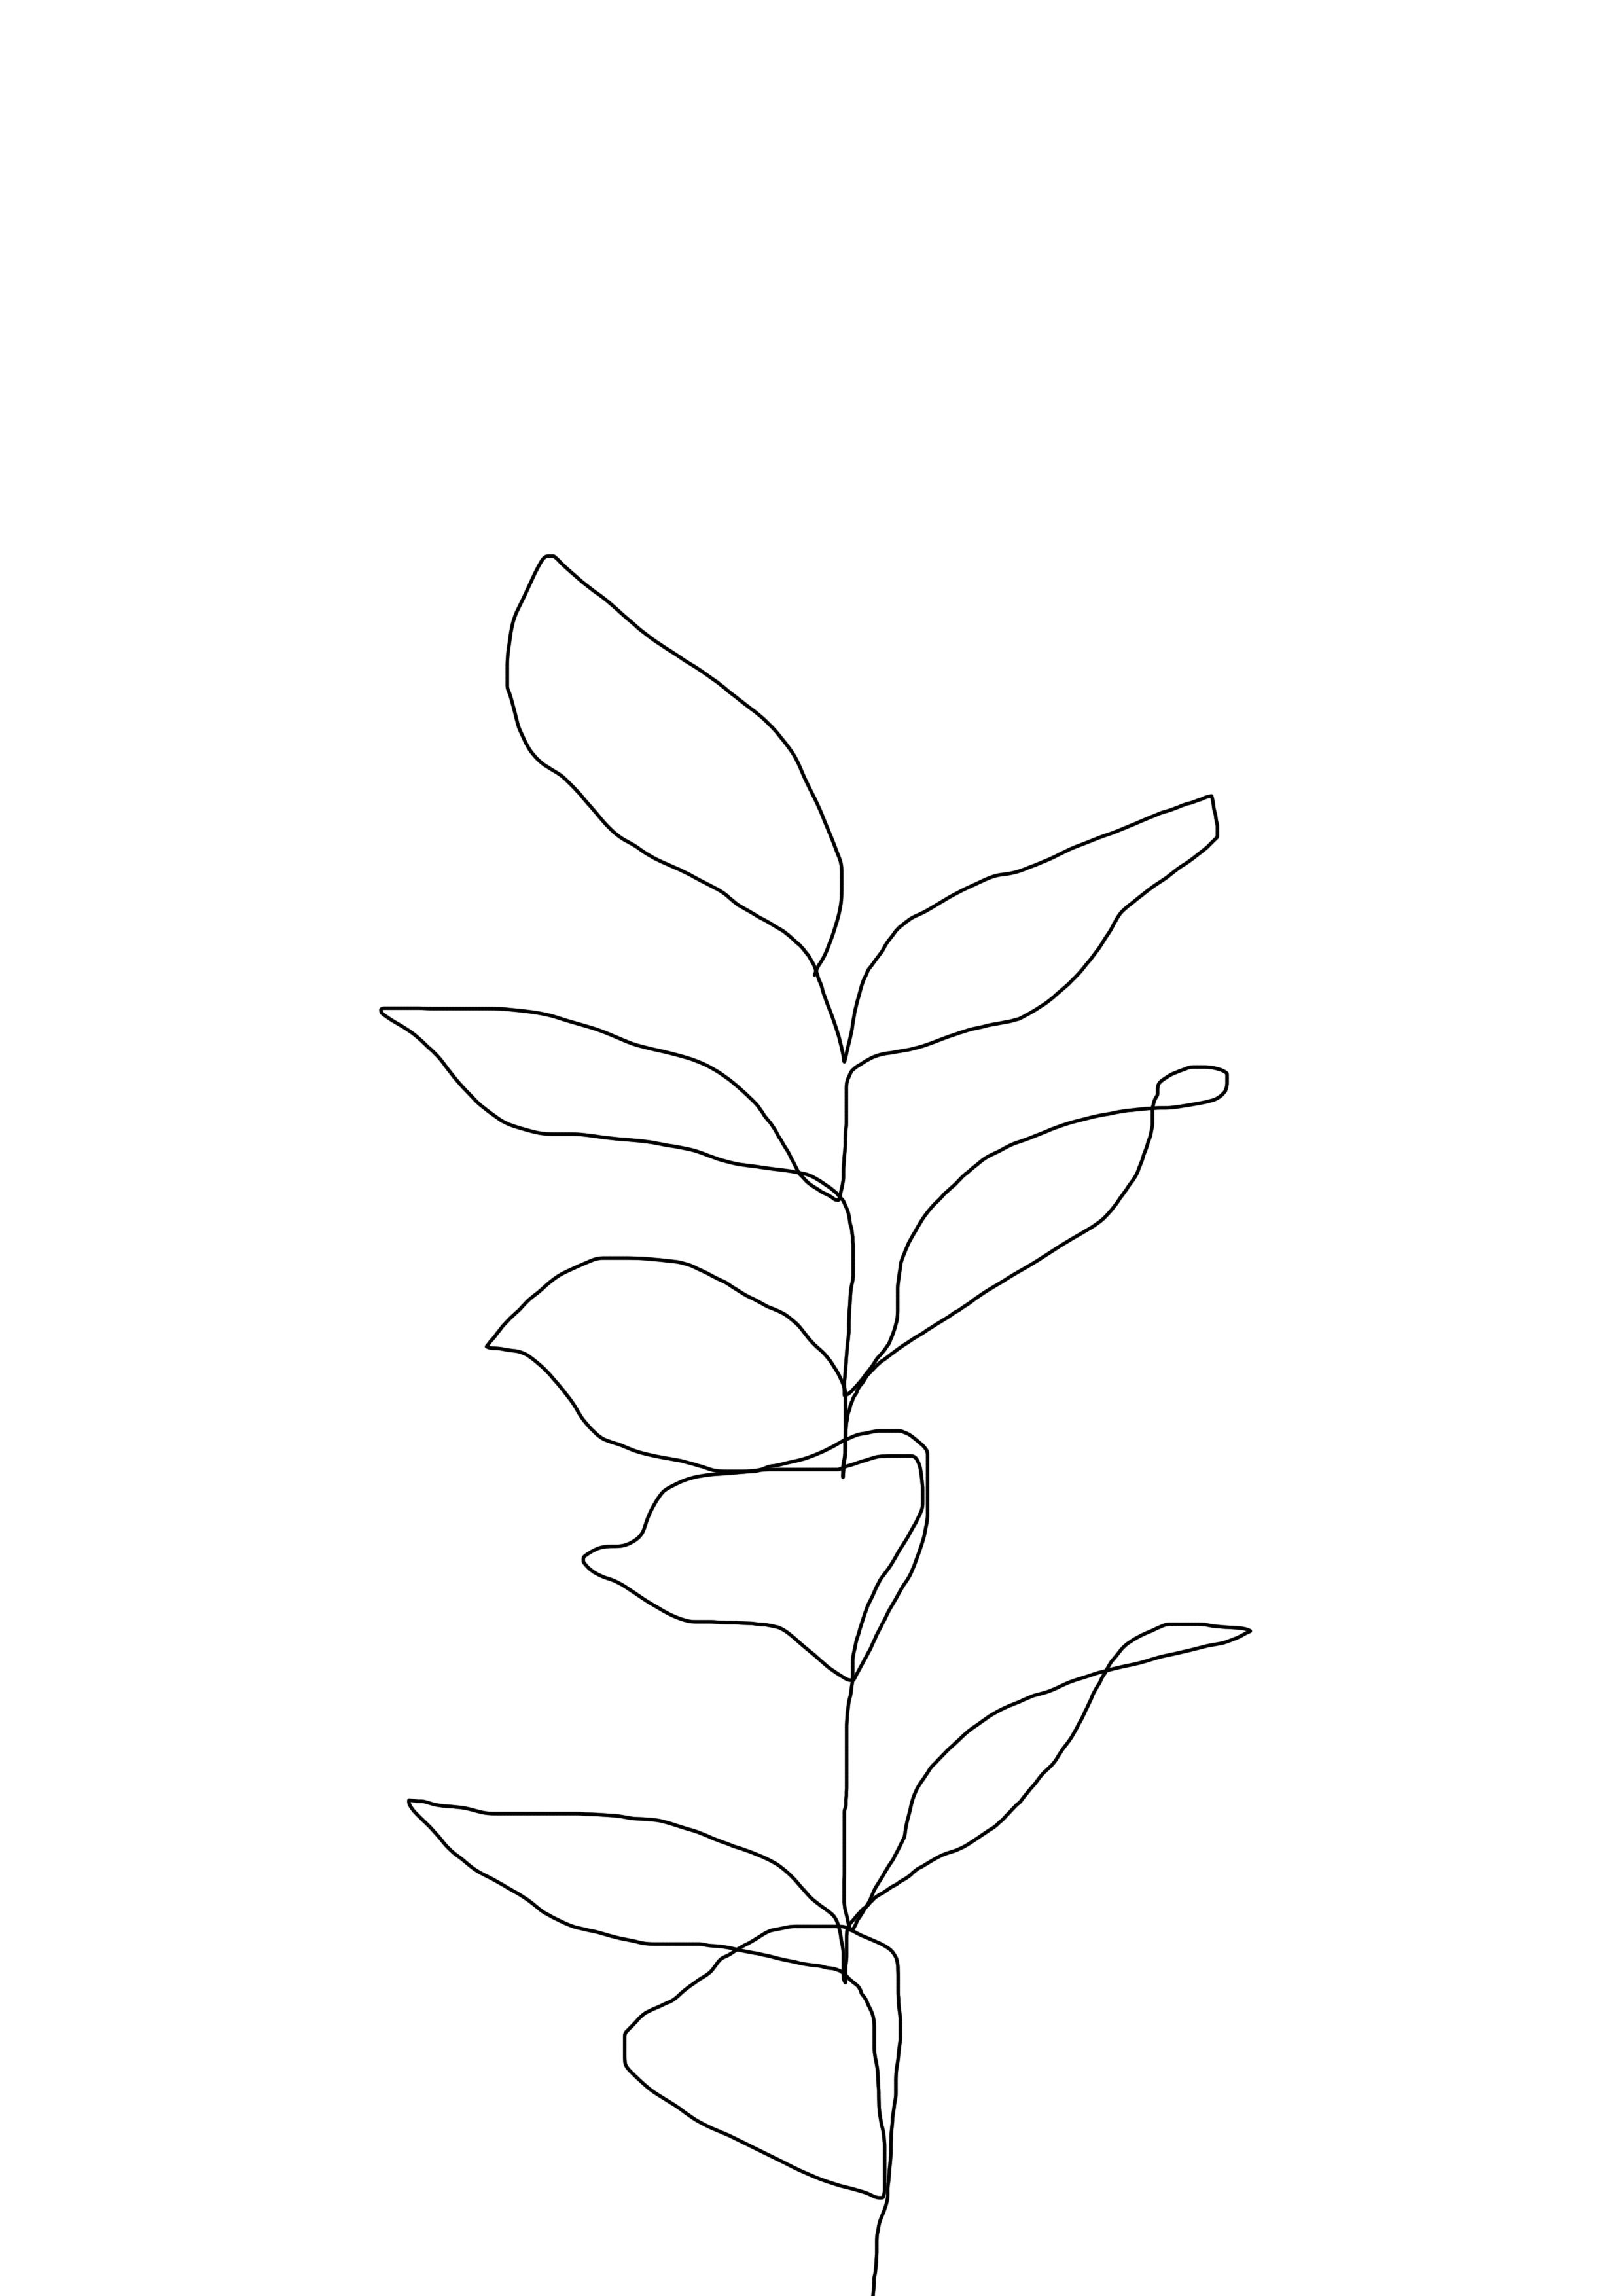 2480x3508 One Line Continuous Drawing From Plant. Minimal Illustration